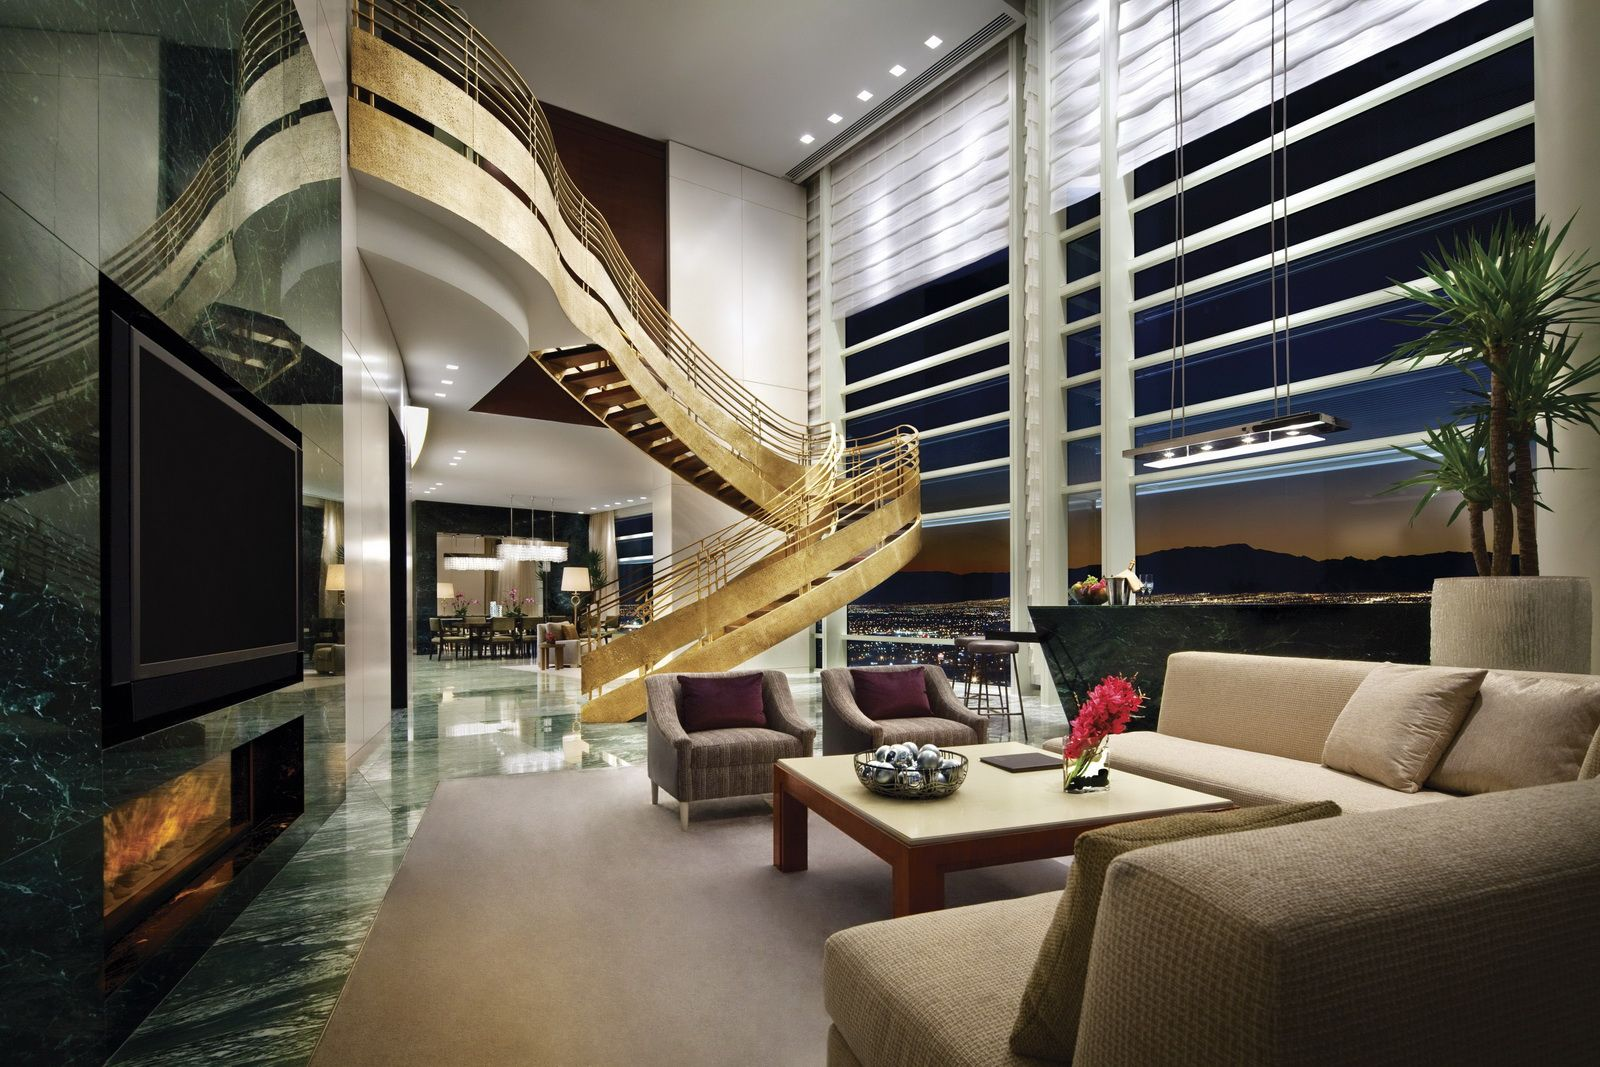 Las Vegas Hotels Suites 3 Bedroom Sky Villa At Aria Resort Casino 2 Story 3 Bedroom Villa With